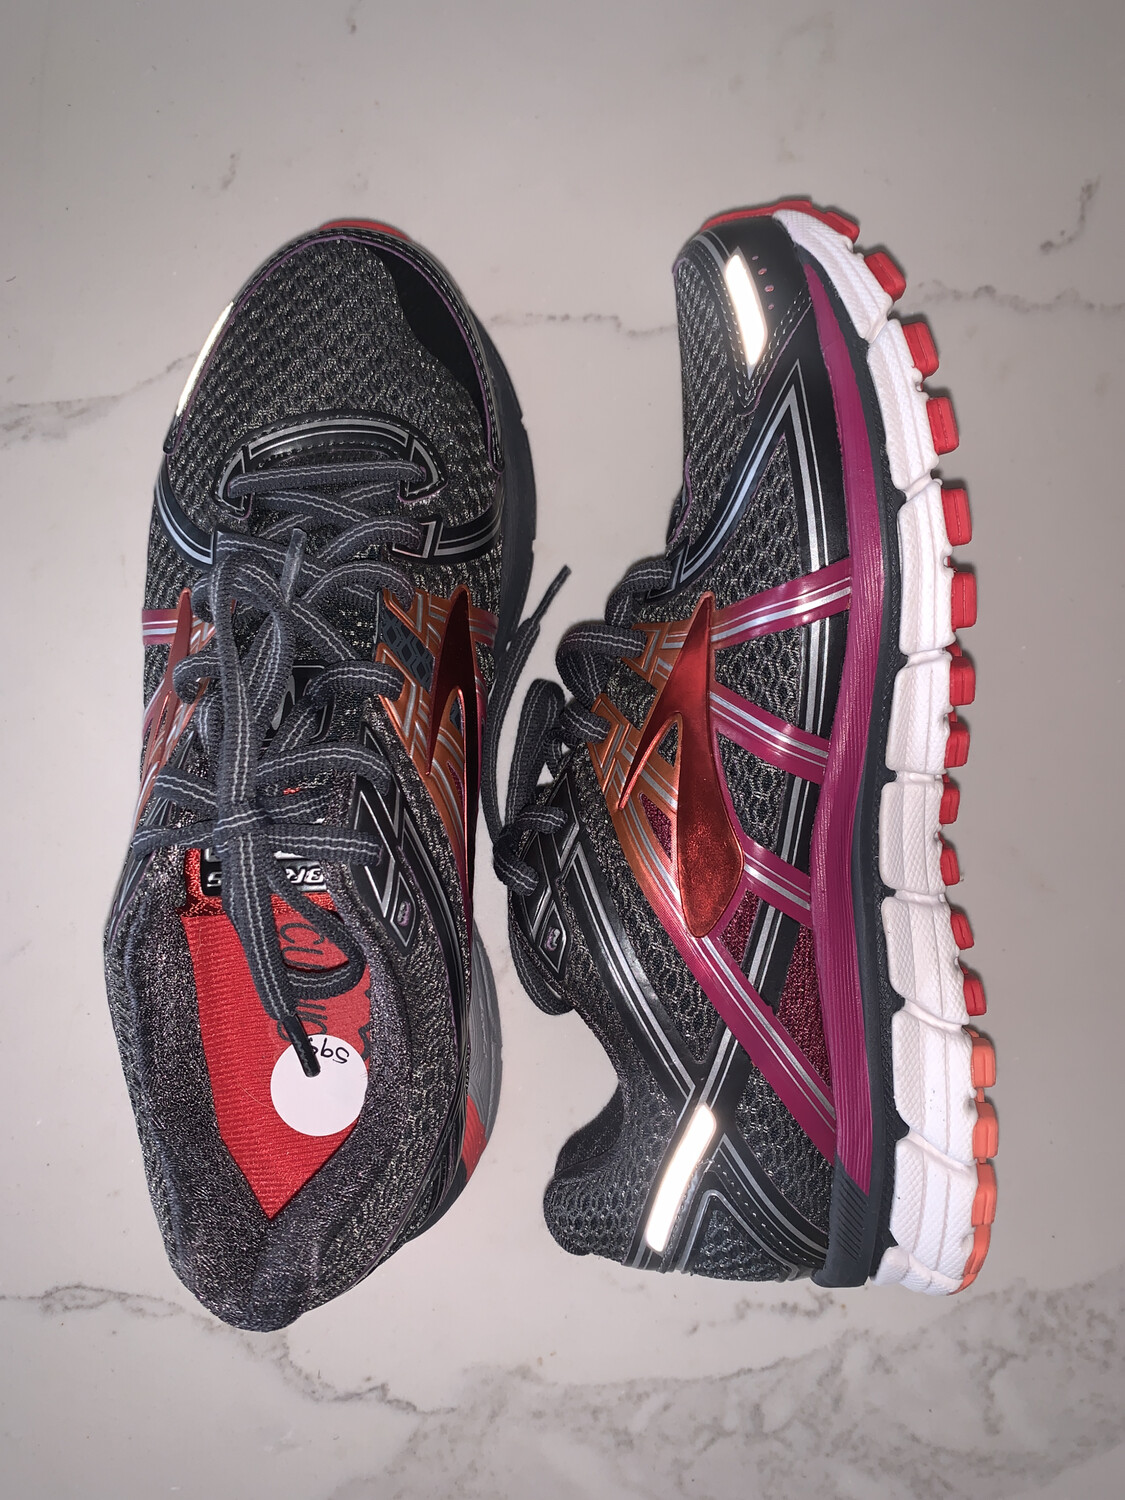 Brooks GTS Seventeen Running Shoes - Size 8